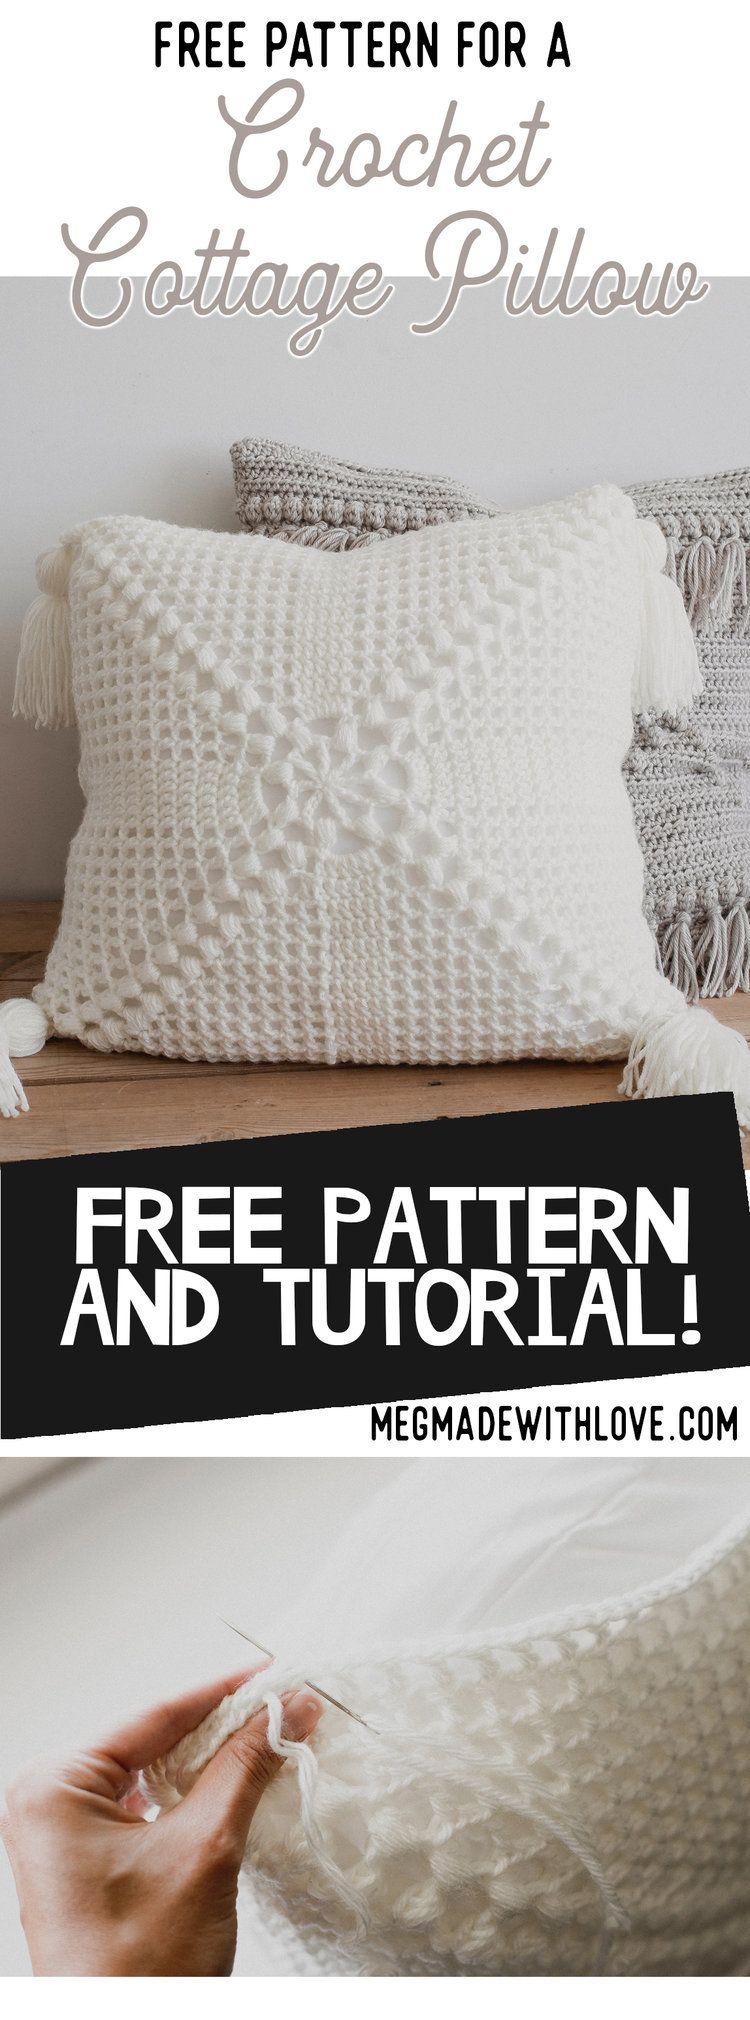 Free Pattern for the Crochet Cottage Pillow   Crafty   Pinterest ...